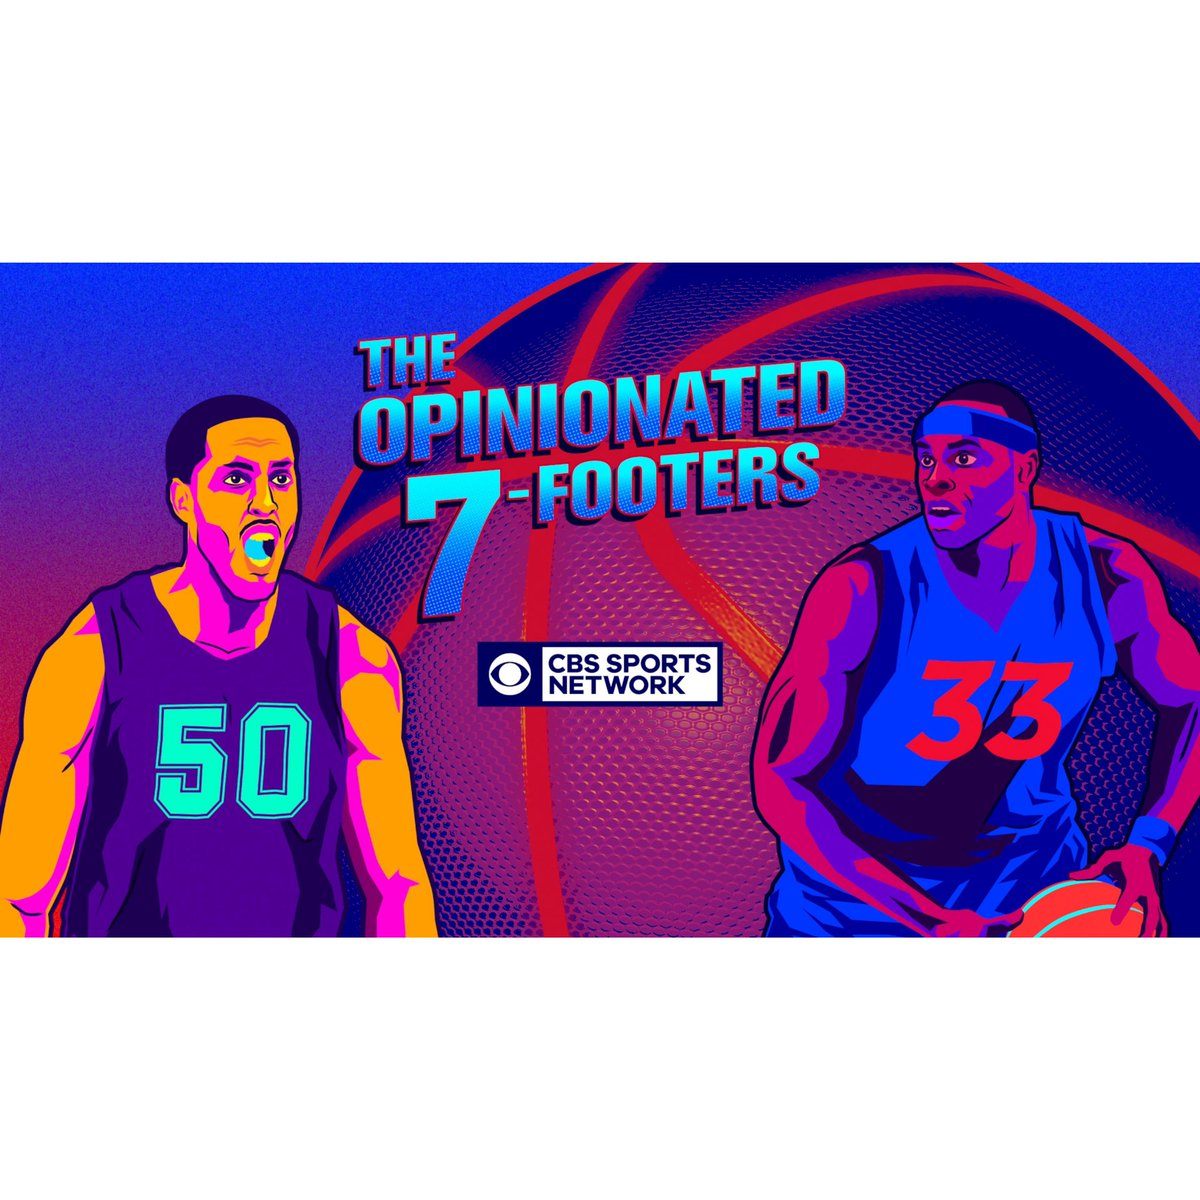 𝐈𝐭'𝐬 𝗼𝐟𝐟𝐢𝐜𝐢𝐚𝐥 𝐭𝐡𝐞 @Opinionated7FT 𝐡𝐚𝐯𝐞 𝐣𝗼𝐢𝐧𝐞𝐝 𝐭𝐡𝐞 @cbssports 𝐟𝐚𝗺𝐢𝐥𝐲   We could not do any of this without your support.  @bwood_33 @JusNIx_  𝐌𝐢𝐤𝐞 𝐏𝐢𝐞𝐫𝐬𝗼𝐧<br>http://pic.twitter.com/tn42HRopTJ